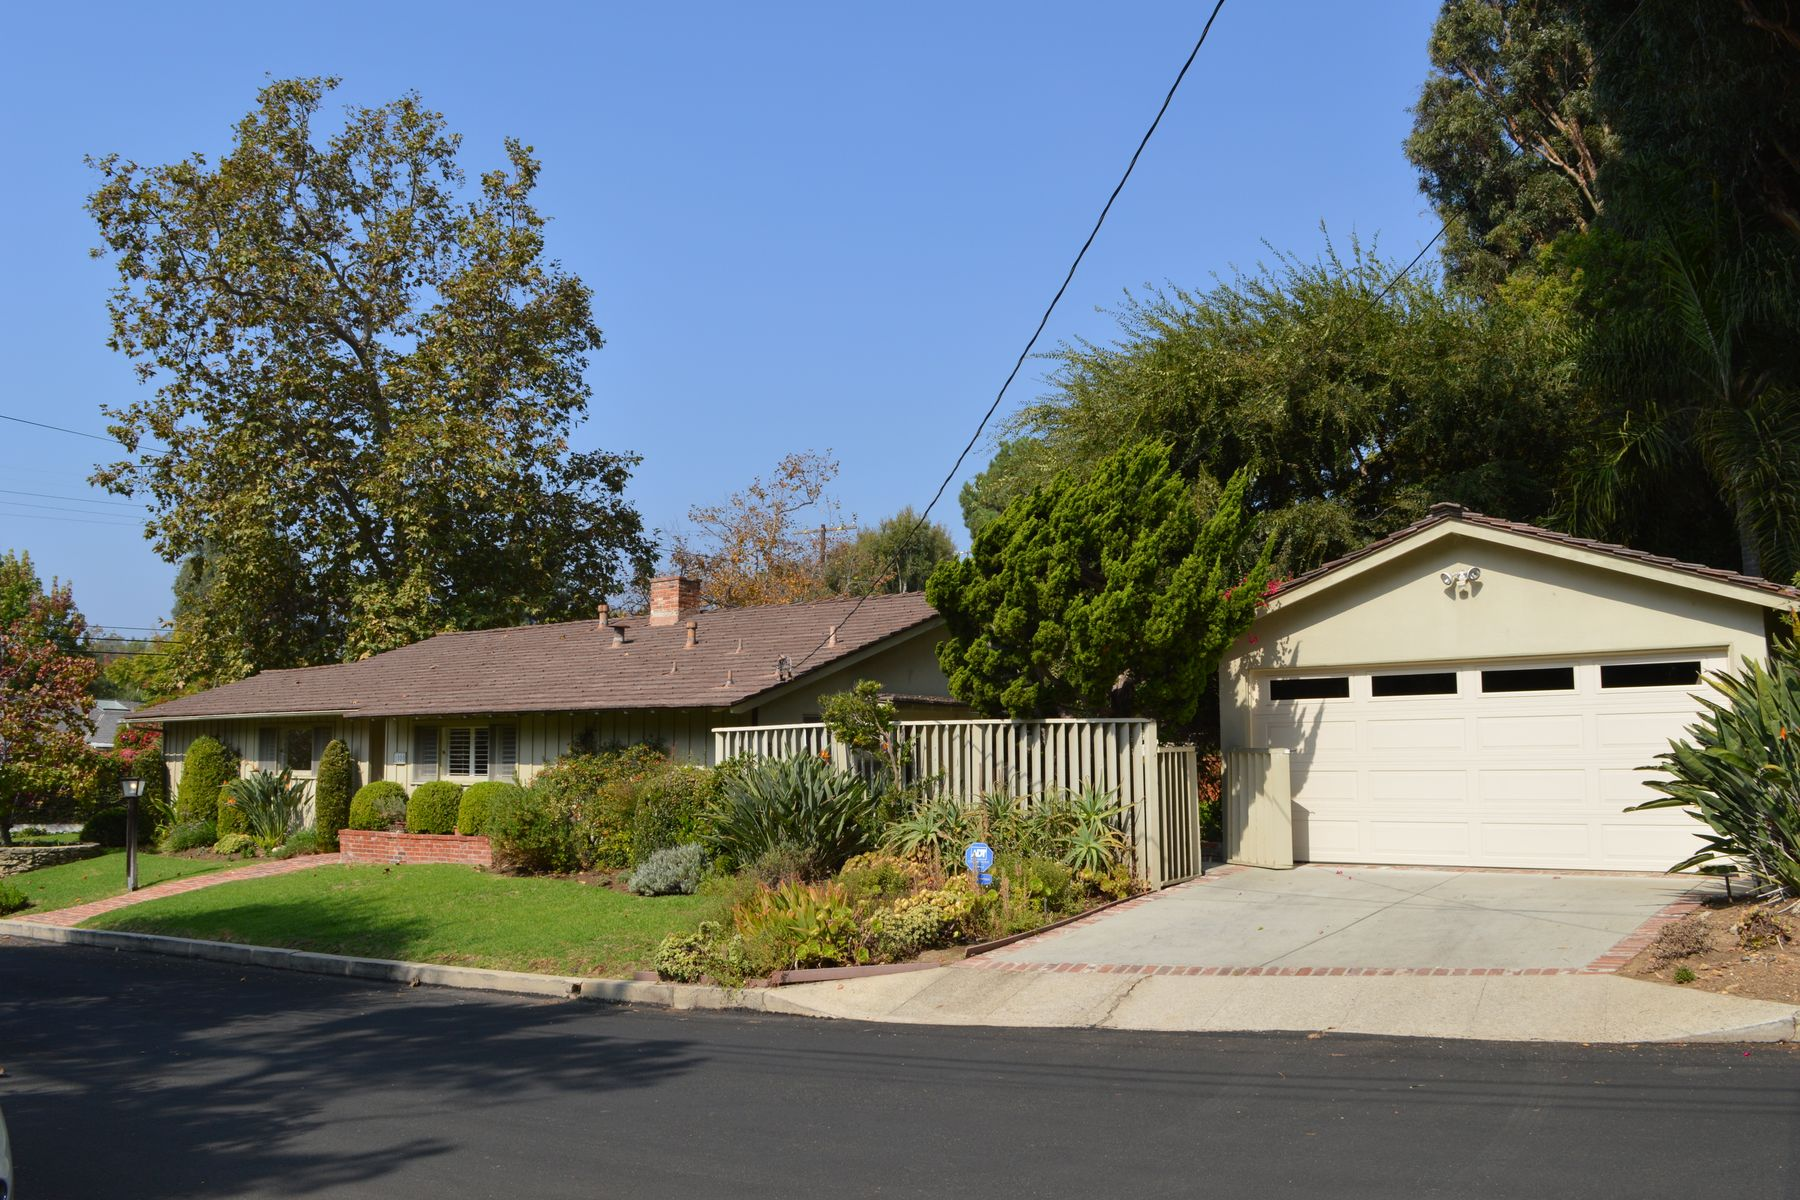 Single Family Homes for Sale at 1000 Las Pulgas Road Pacific Palisades, California 90272 United States